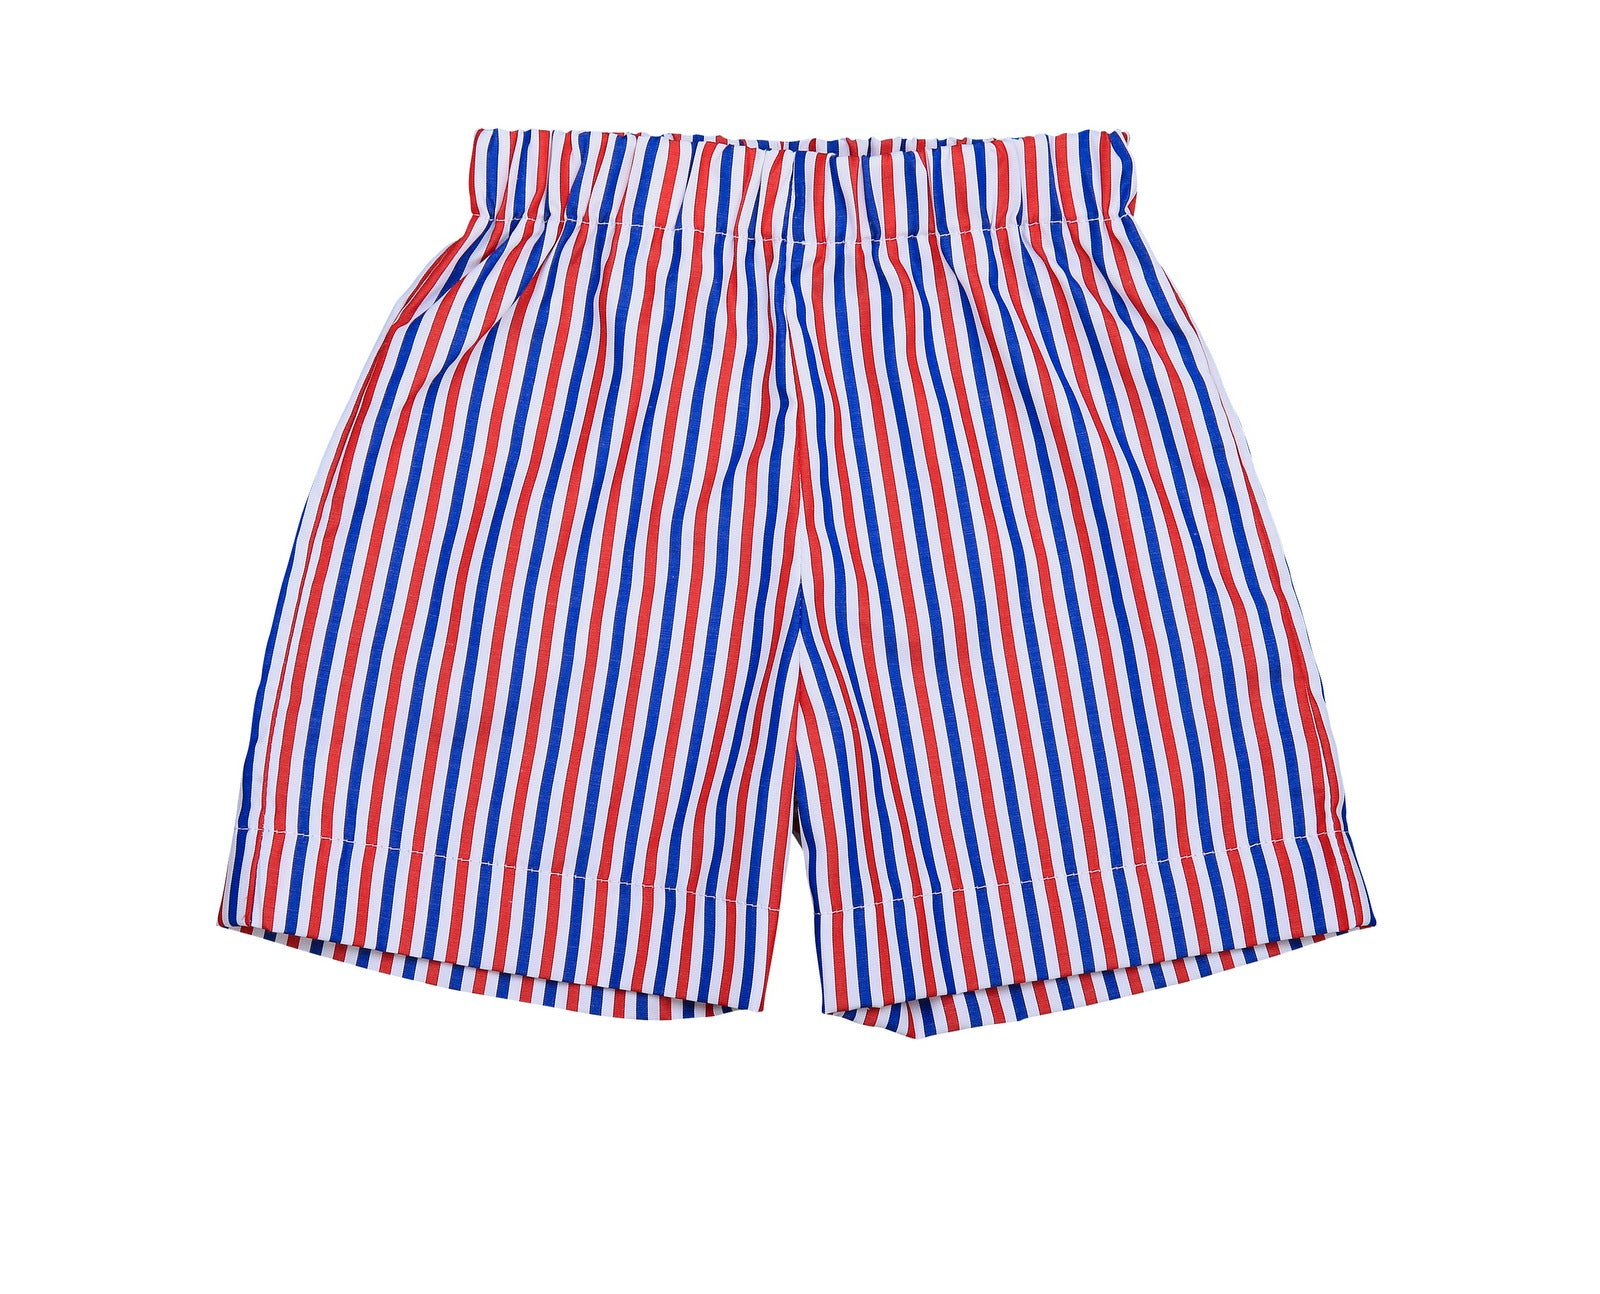 jd pull on shorts red white blue stripe